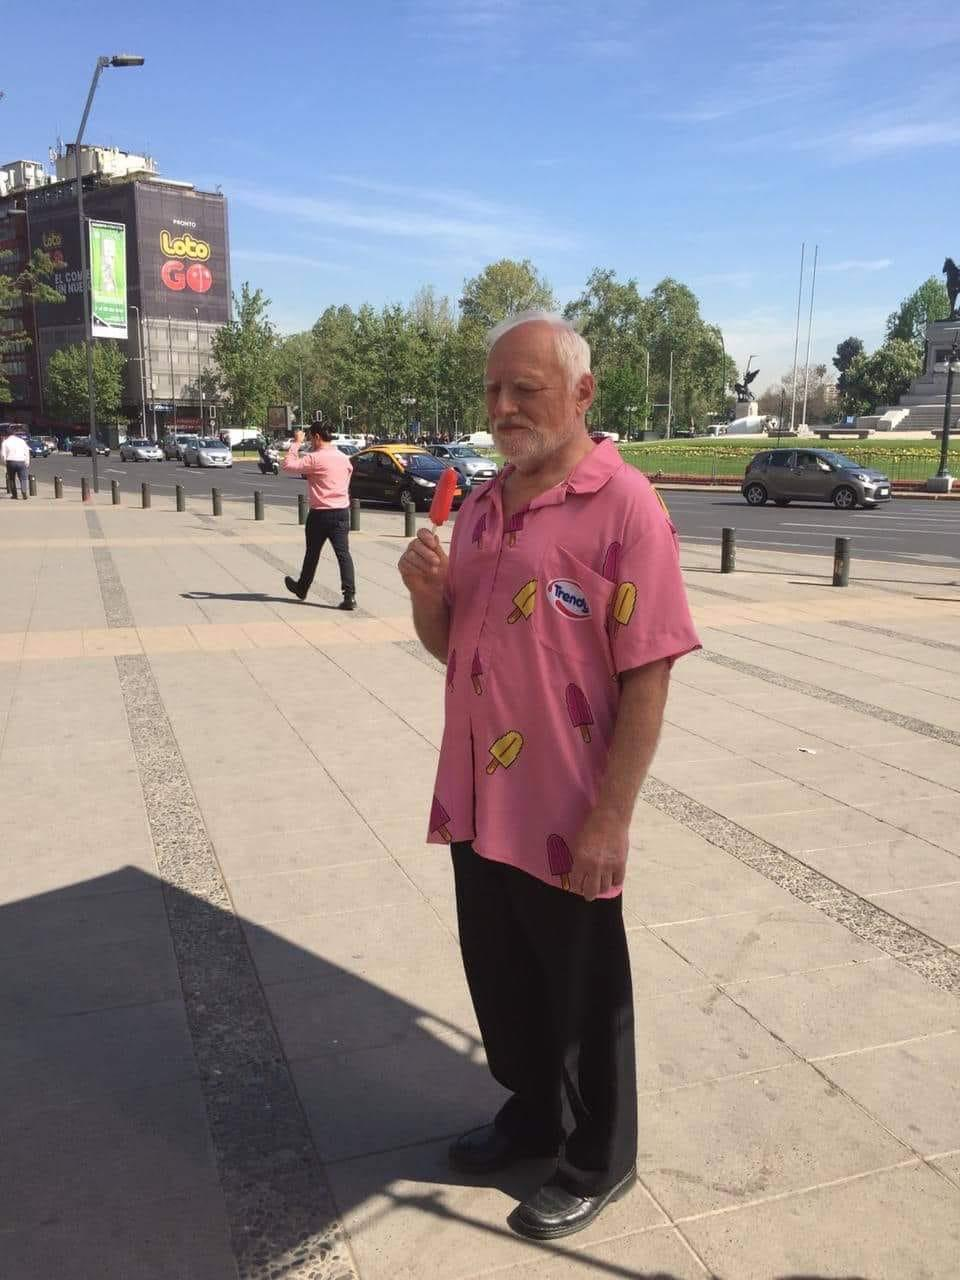 So, hide the pain Harold came to my country to film a ice cream ad.